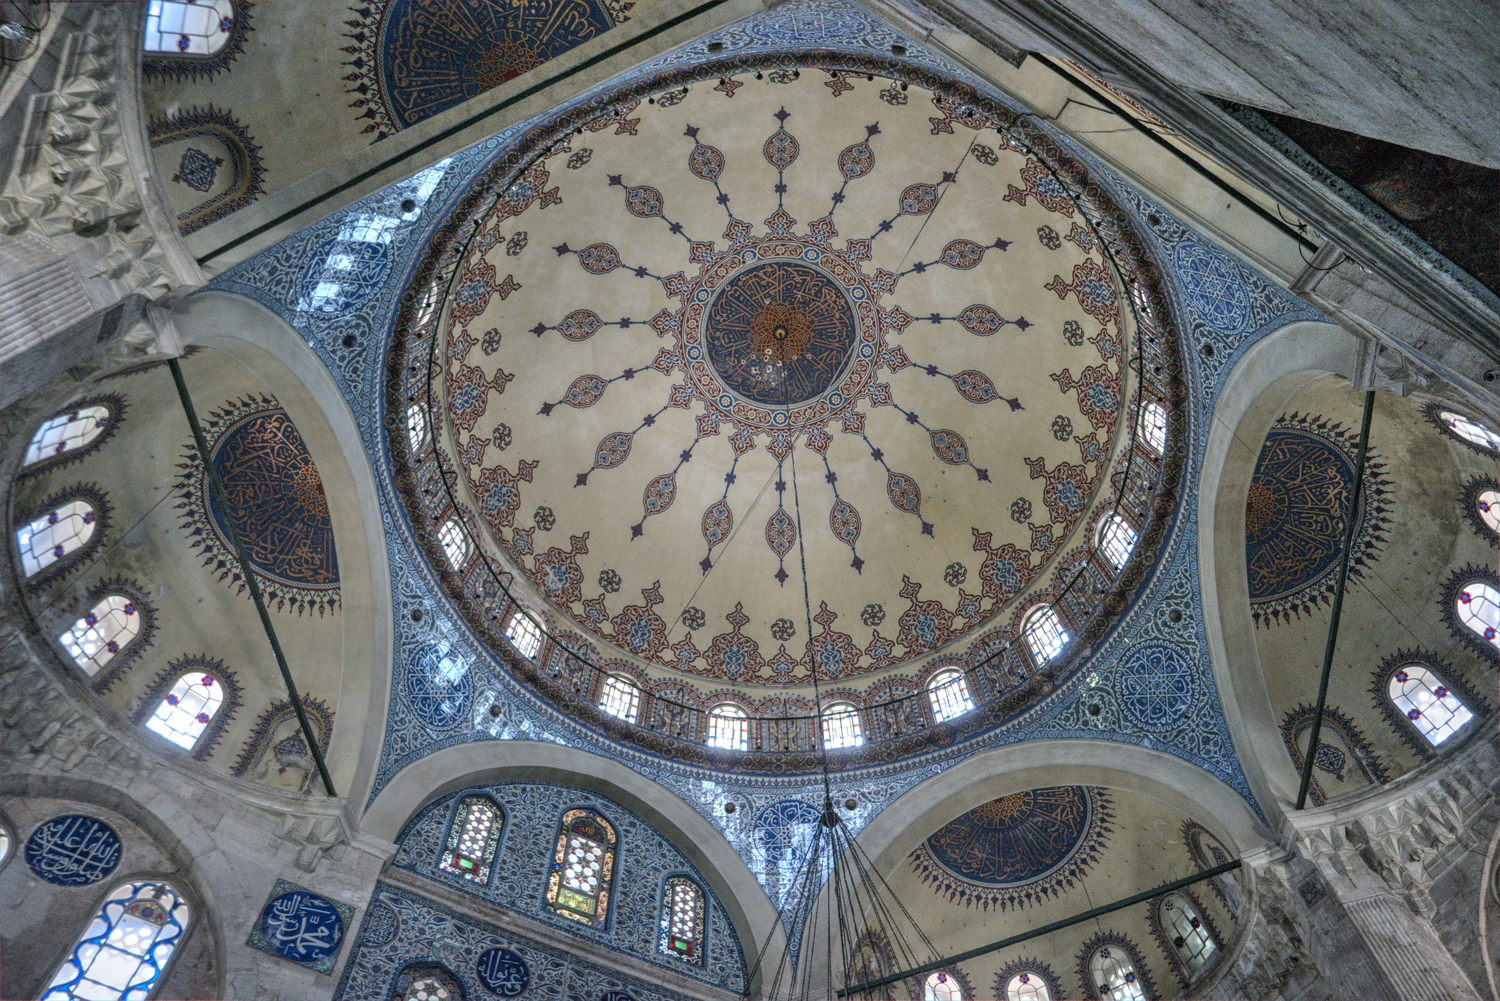 Sokollu Mehmed Pasha Mosque in Fatih - the dome seen from the inside